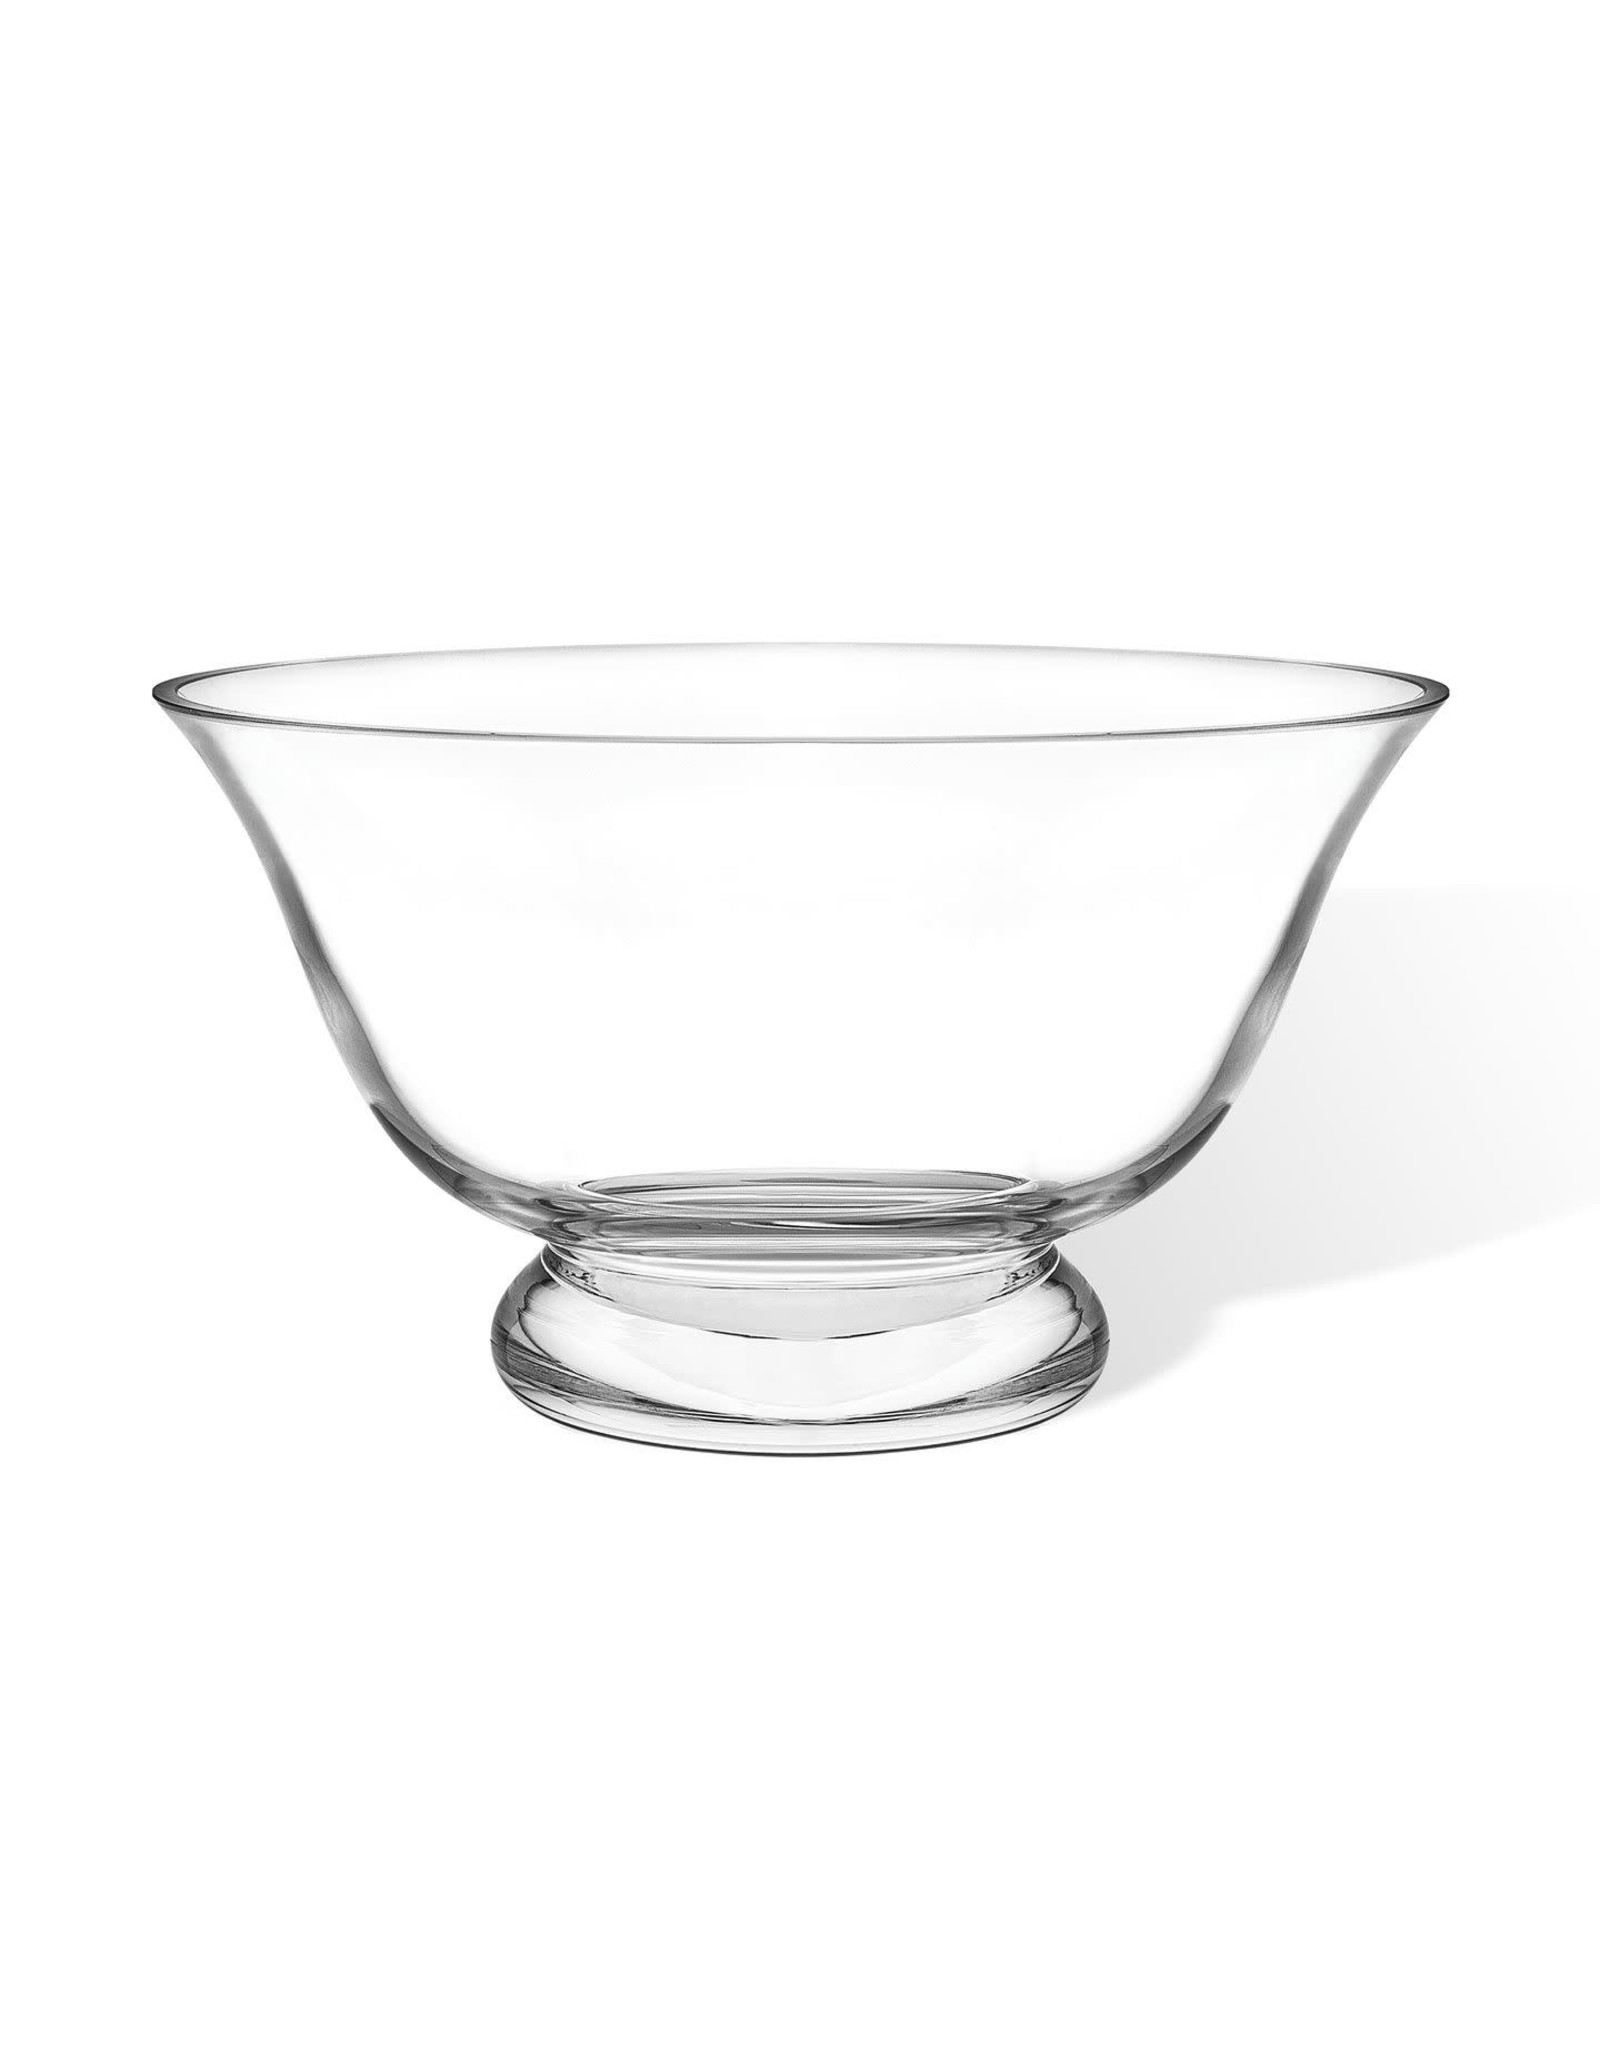 26795 Large Bowl Revere Glass